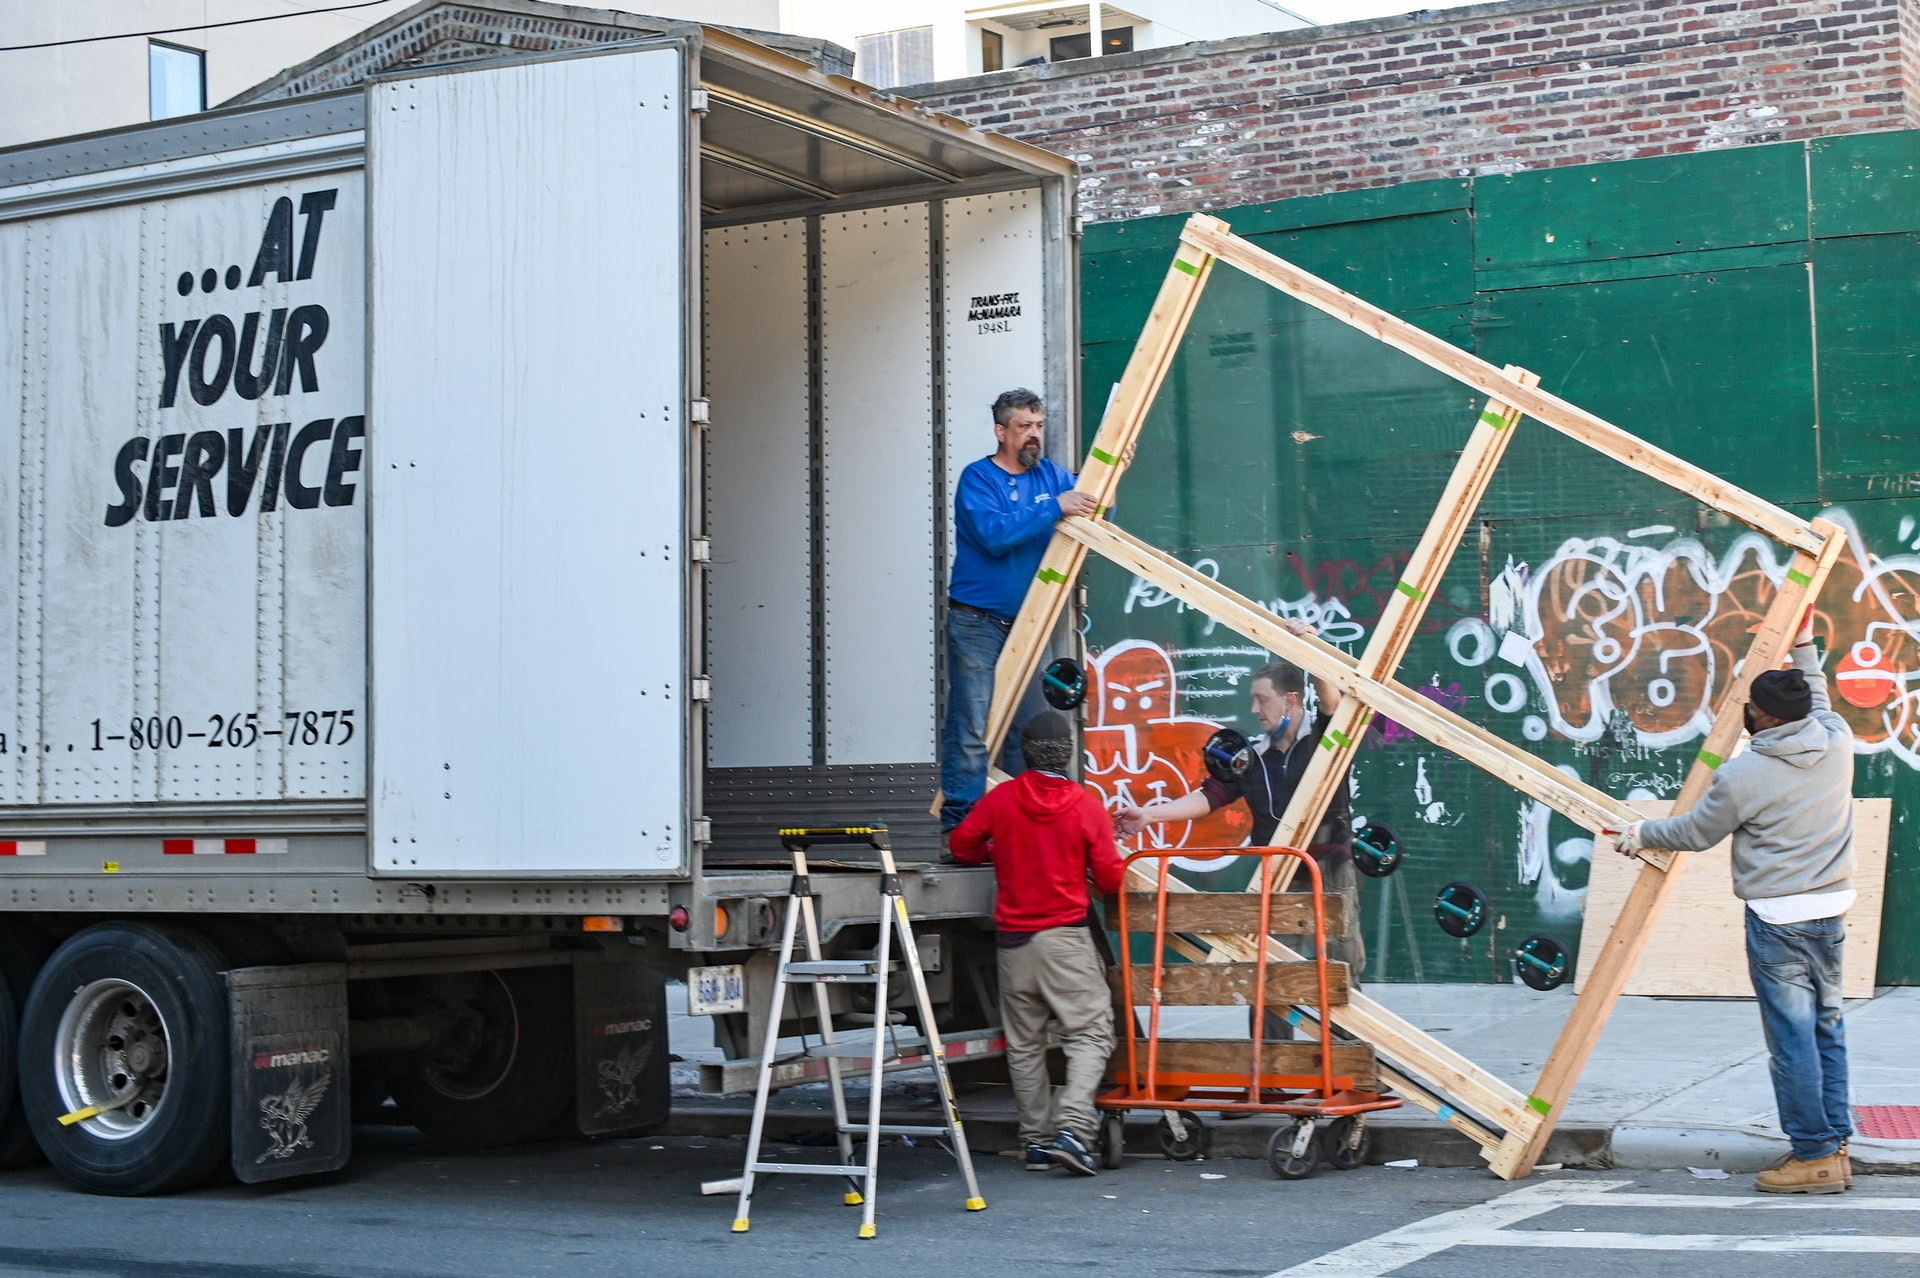 moving to Saudi Arabia - hire movers to help you out